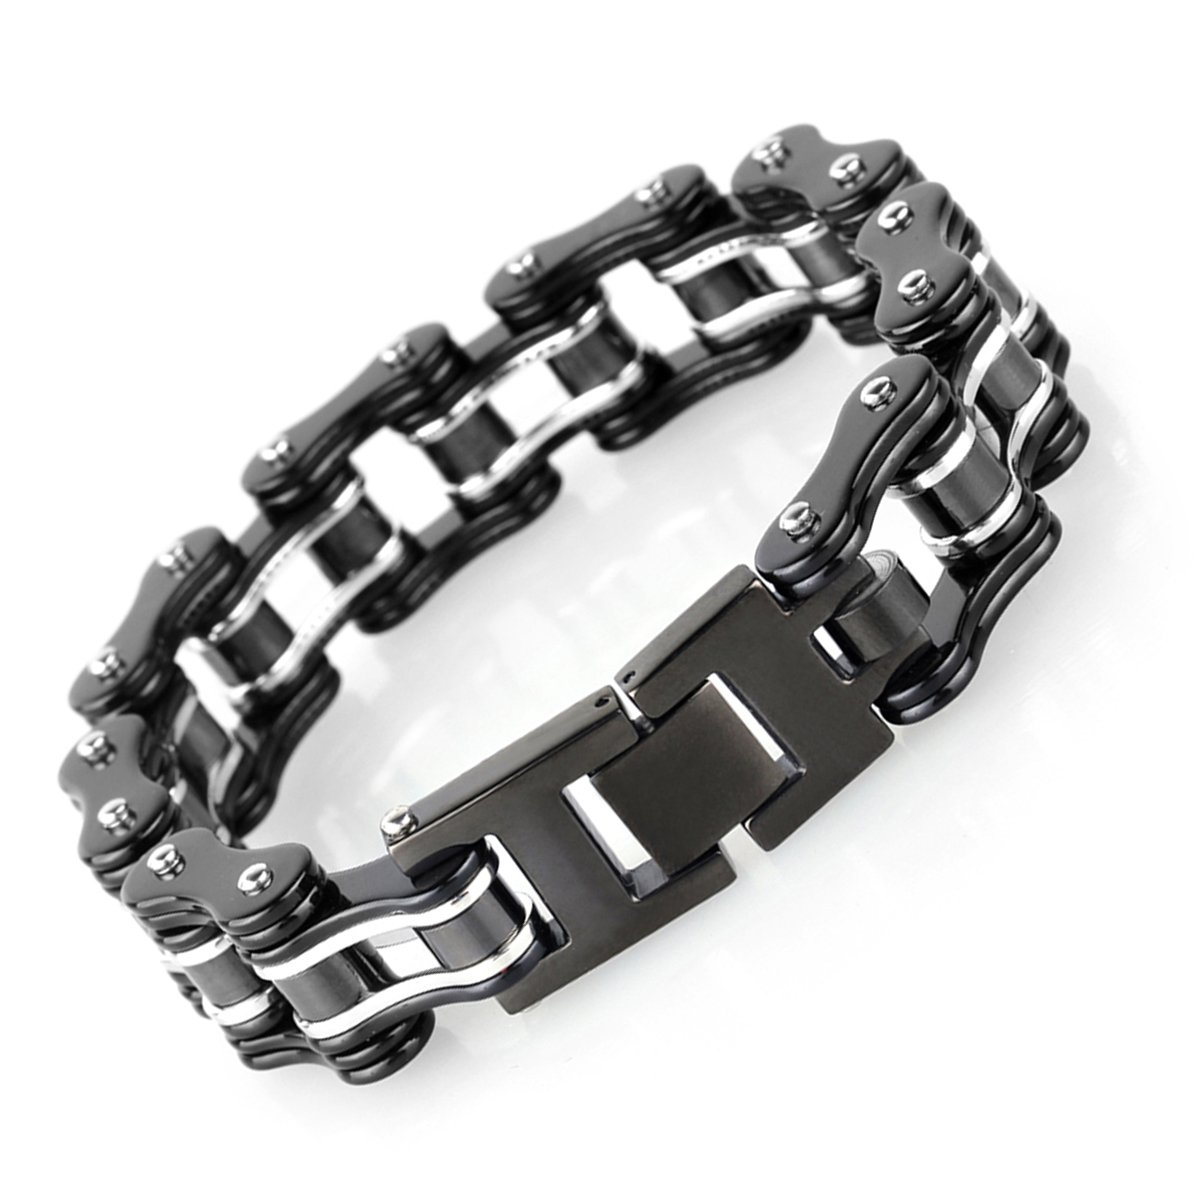 HOKY Bike Chain Bracelets for Men Stainless Steel KB69658-CA